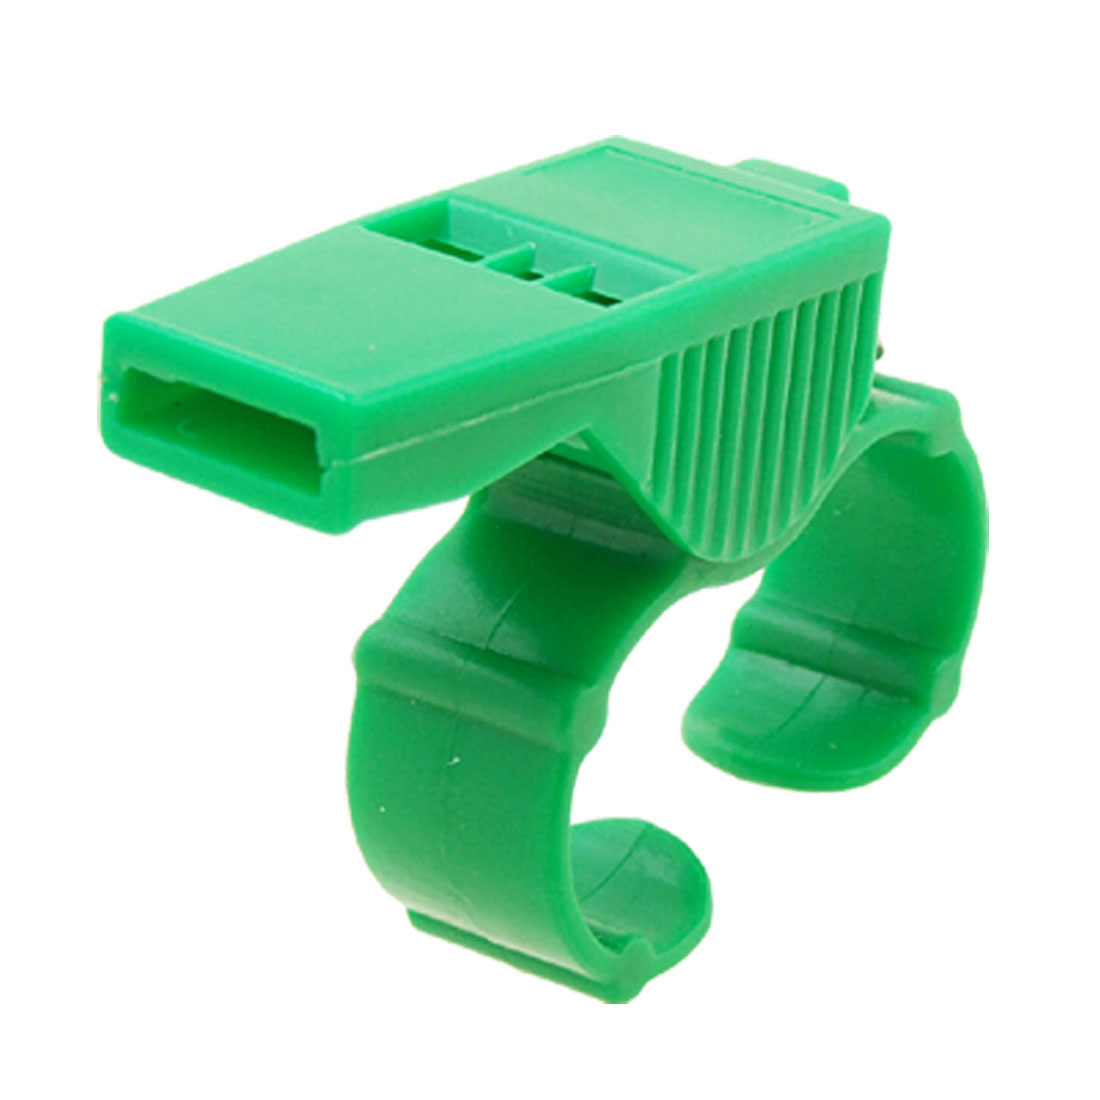 Green Plastic Sports Referee Finger Whistle